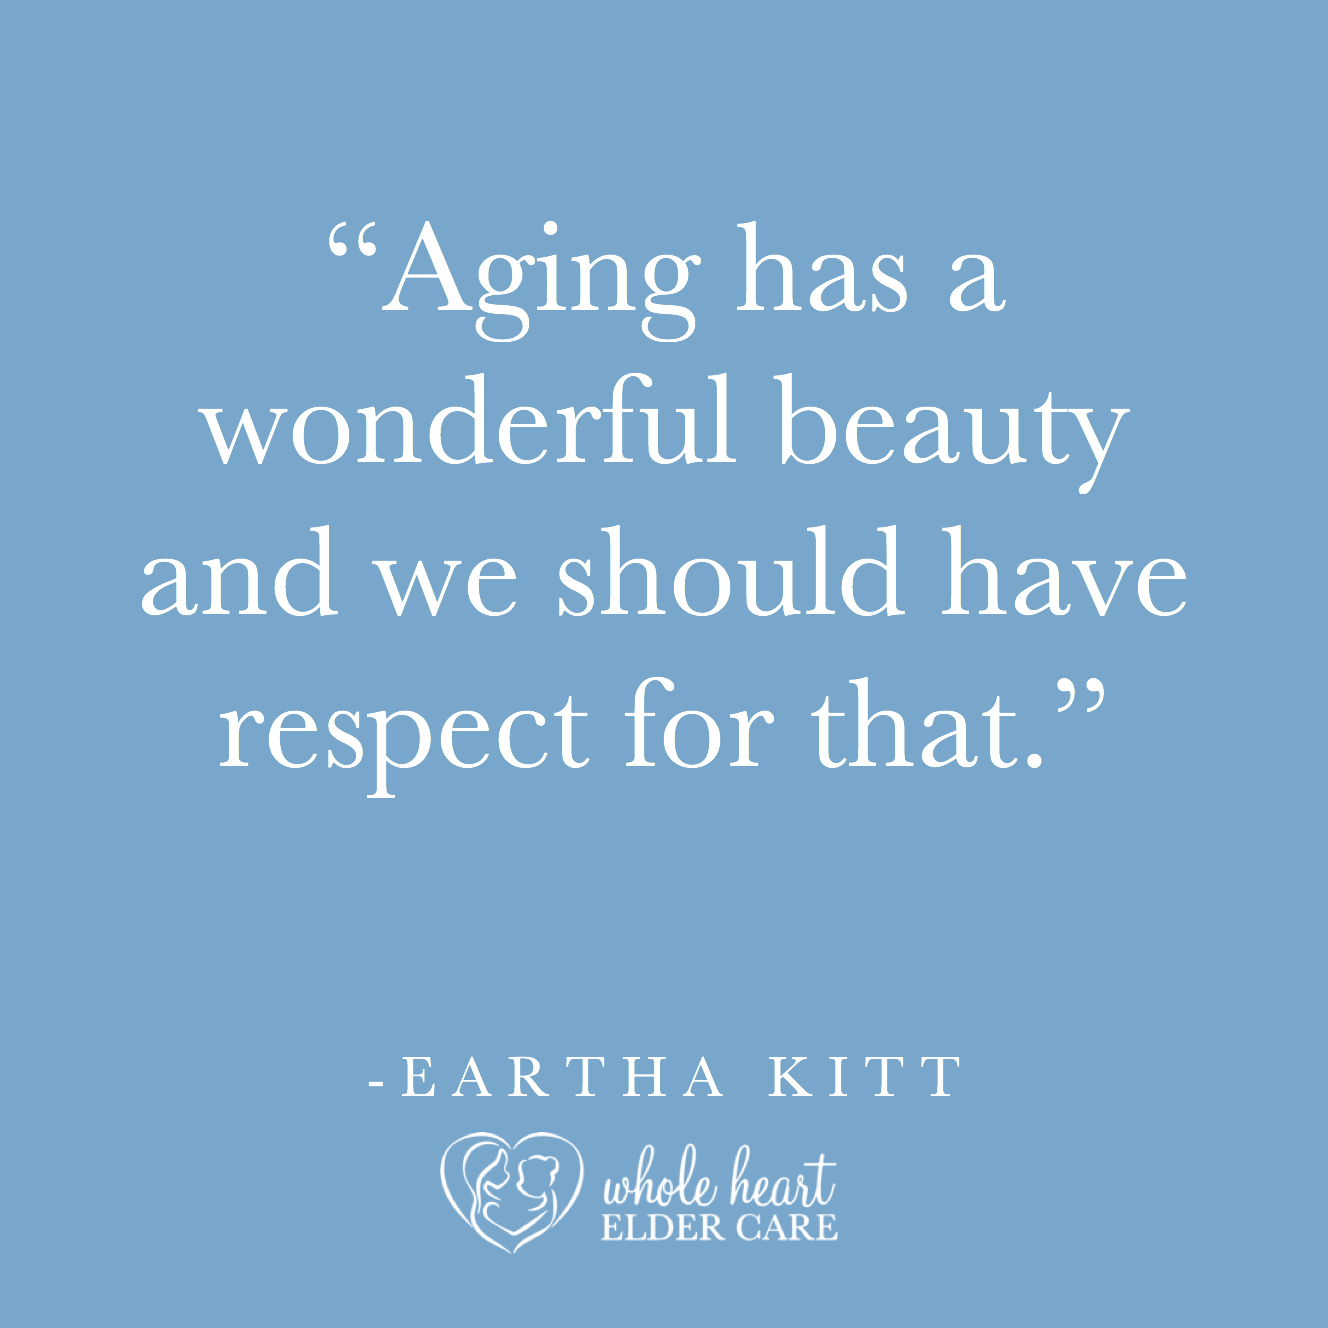 Pin By Whole Heart Elder Care On Elder Care